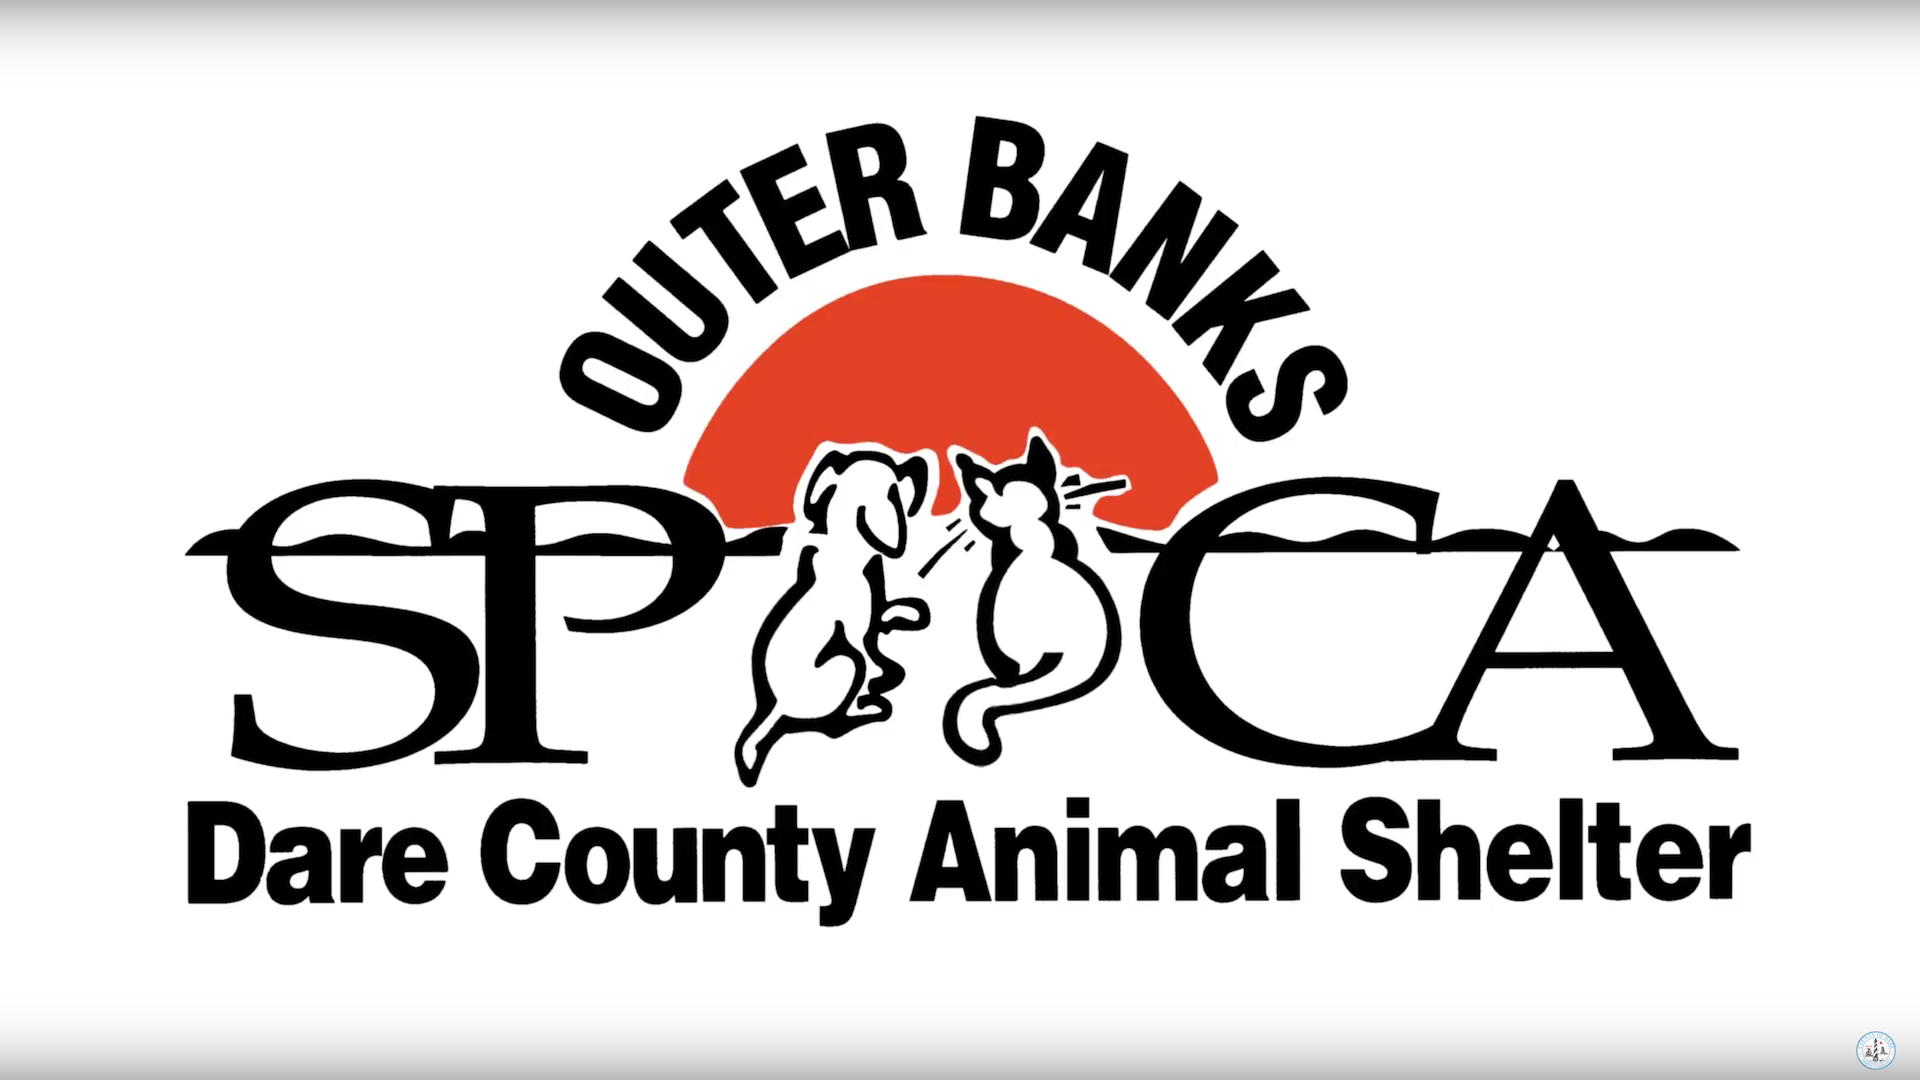 Outer Banks SPCA